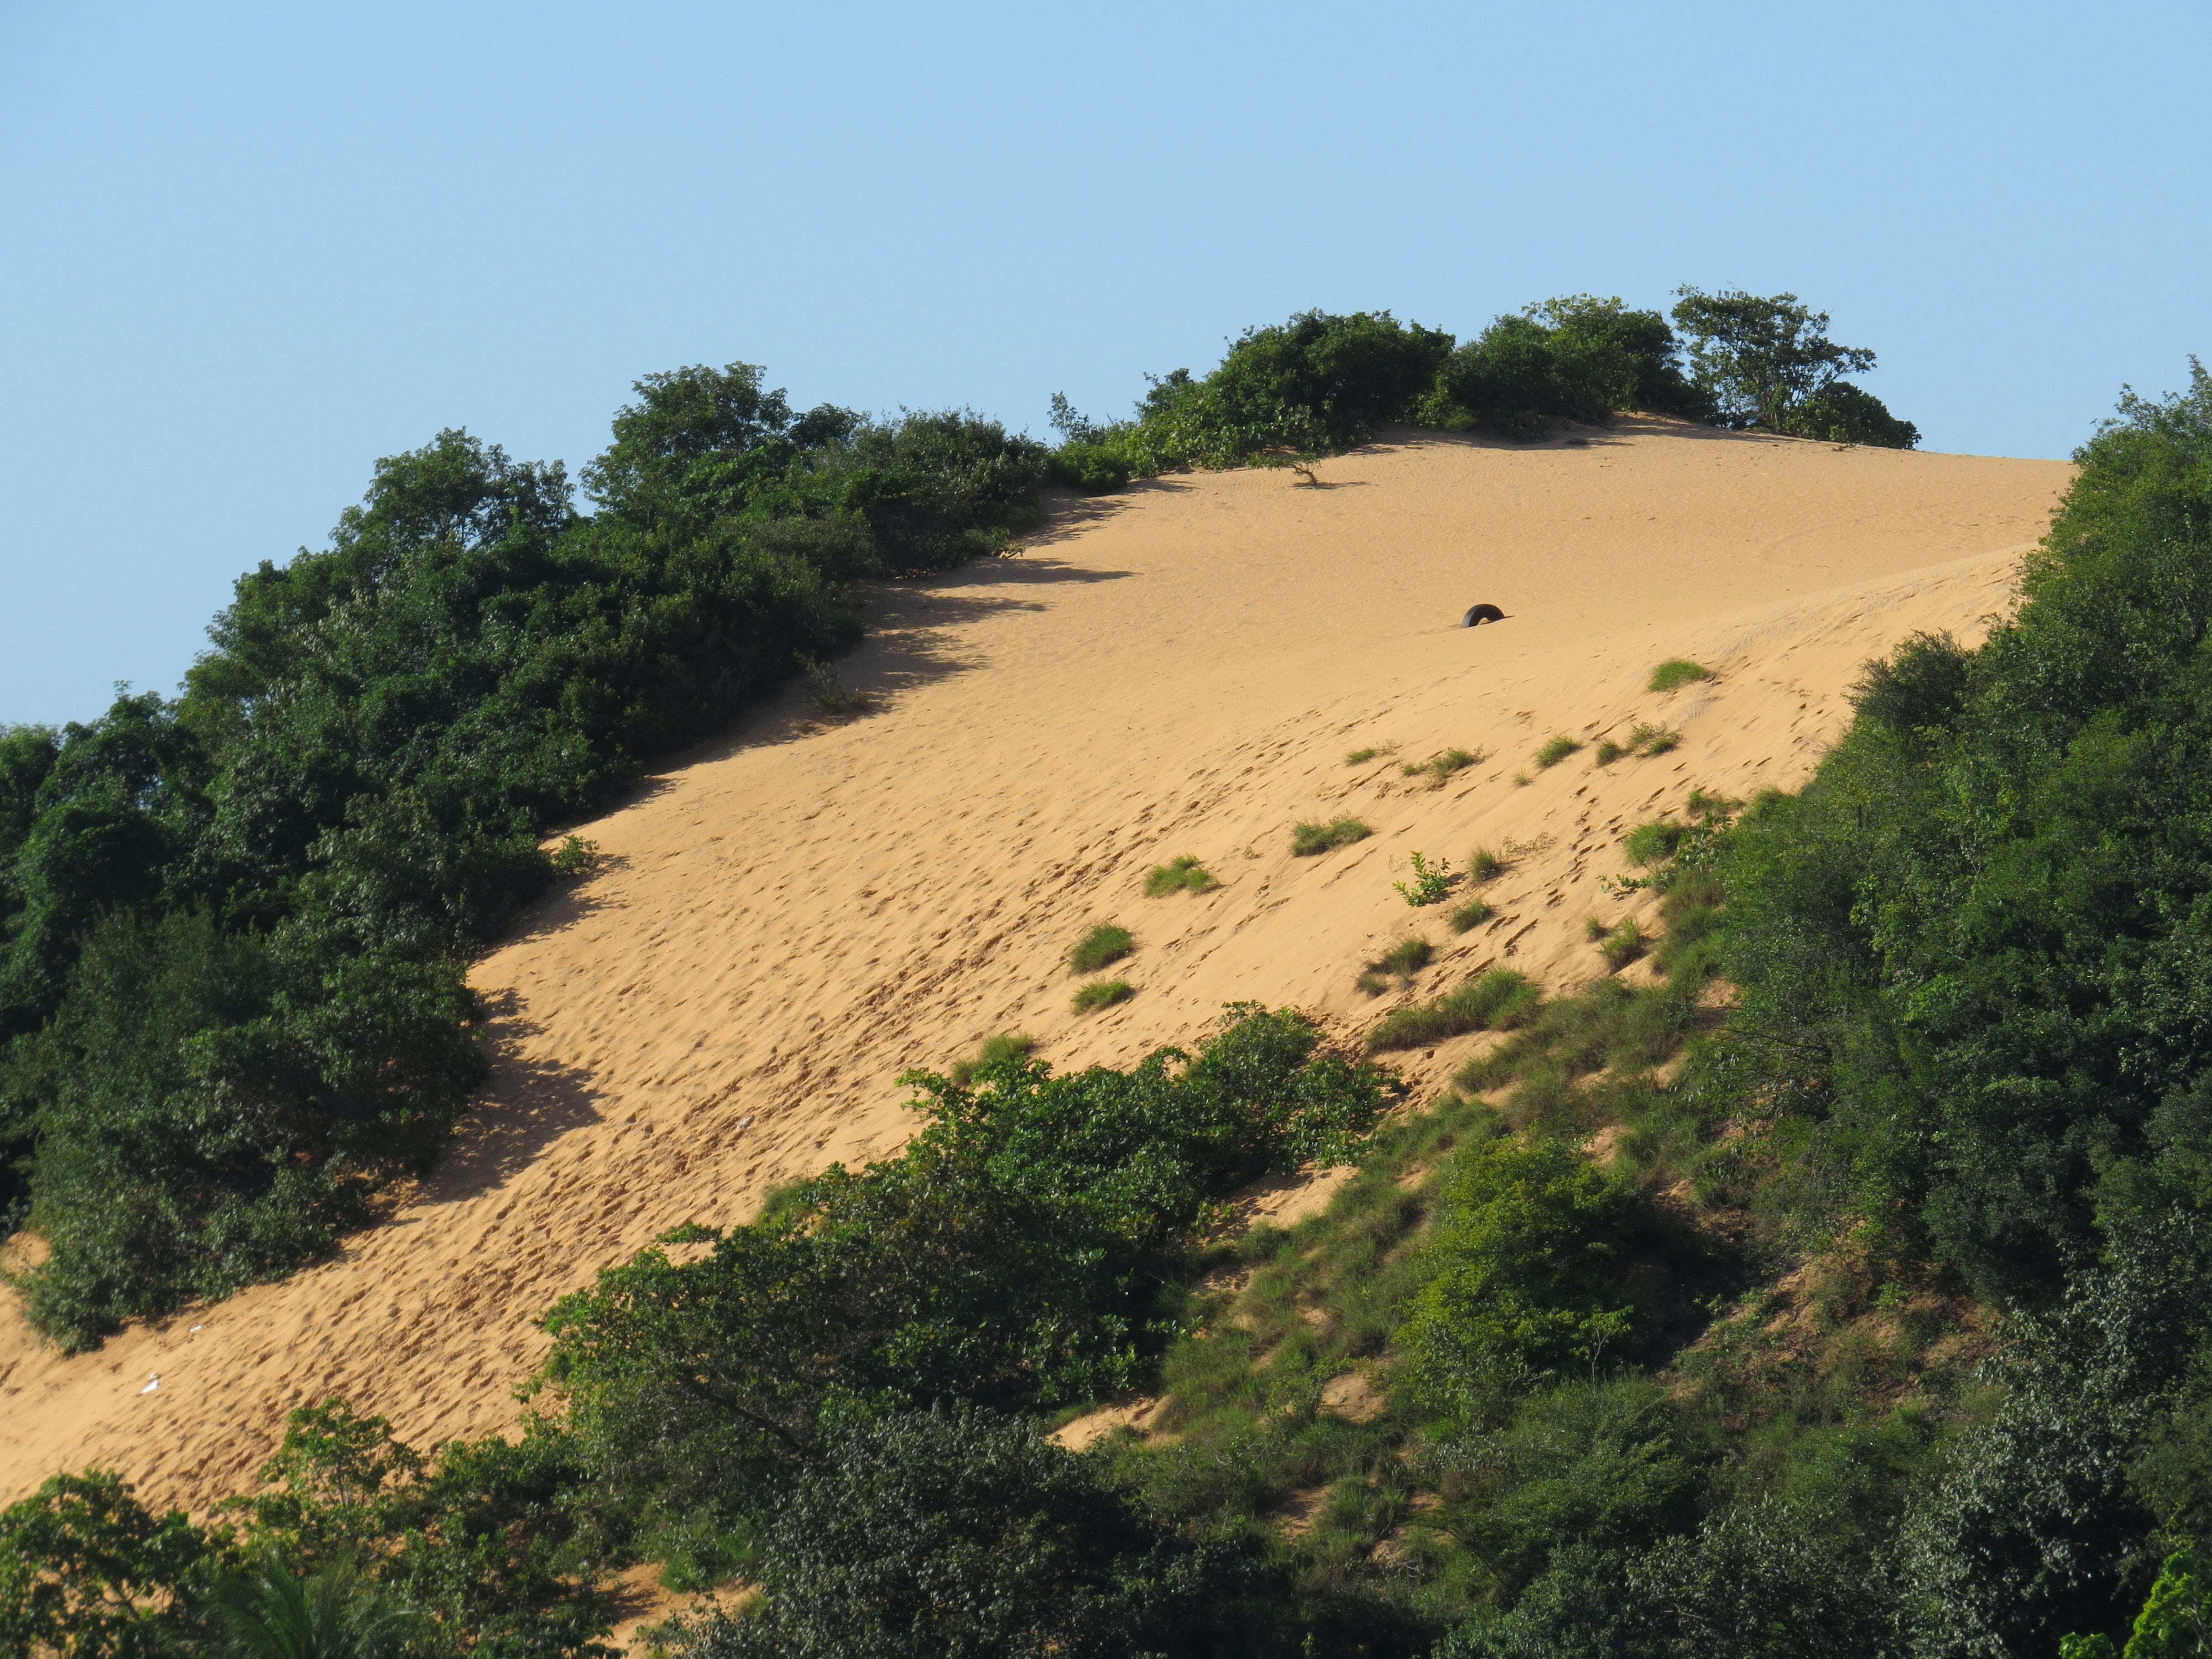 green trees on brown sand under blue sky during daytime